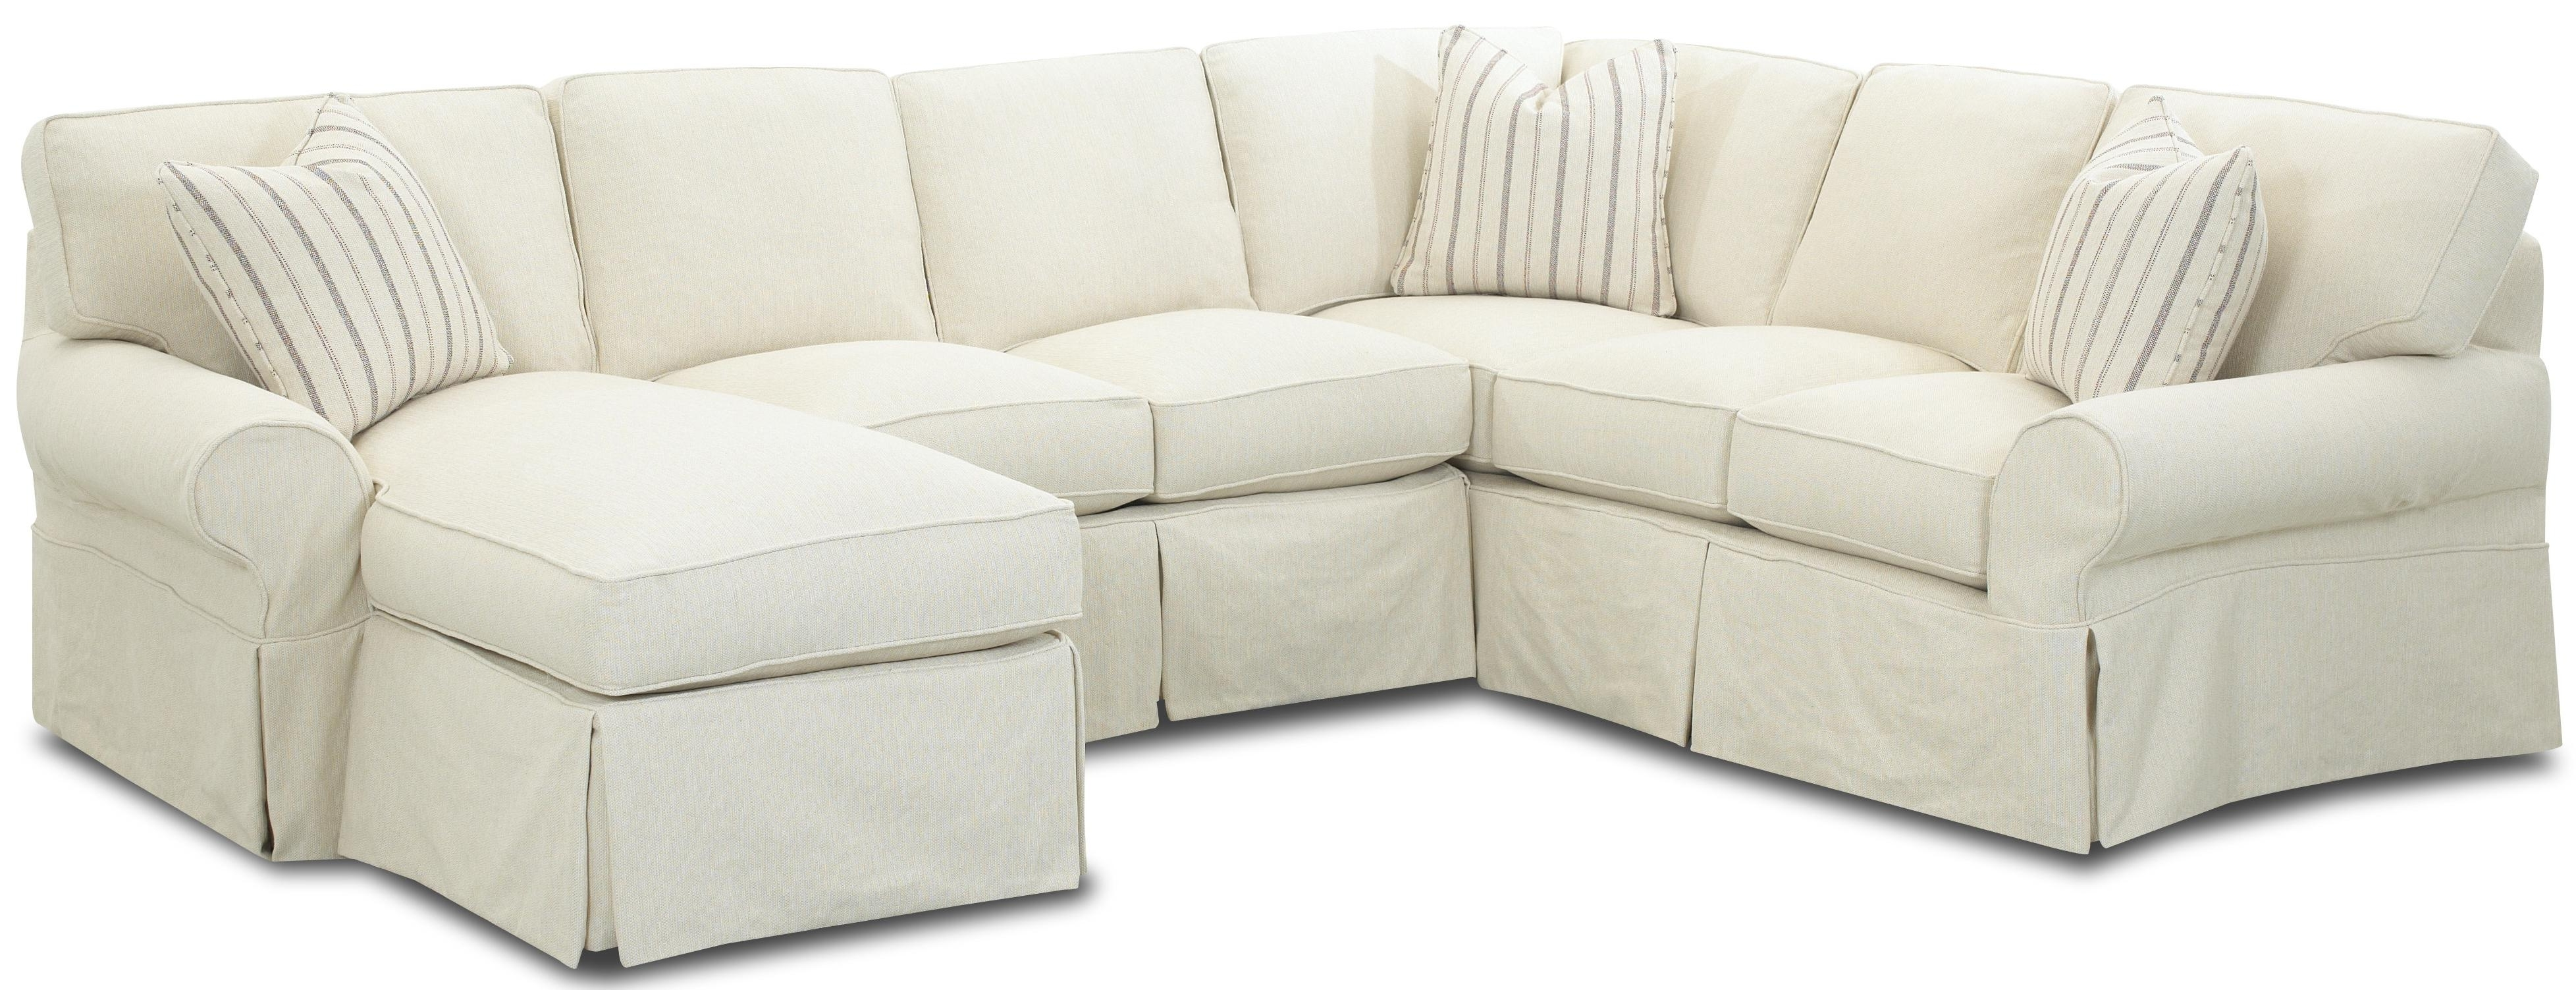 Slipcover Sectional Sofas With Chaise Pertaining To Recent Awesome Slipcover Sectional Sofa With Chaise 91 For Modern Sofa (View 3 of 15)